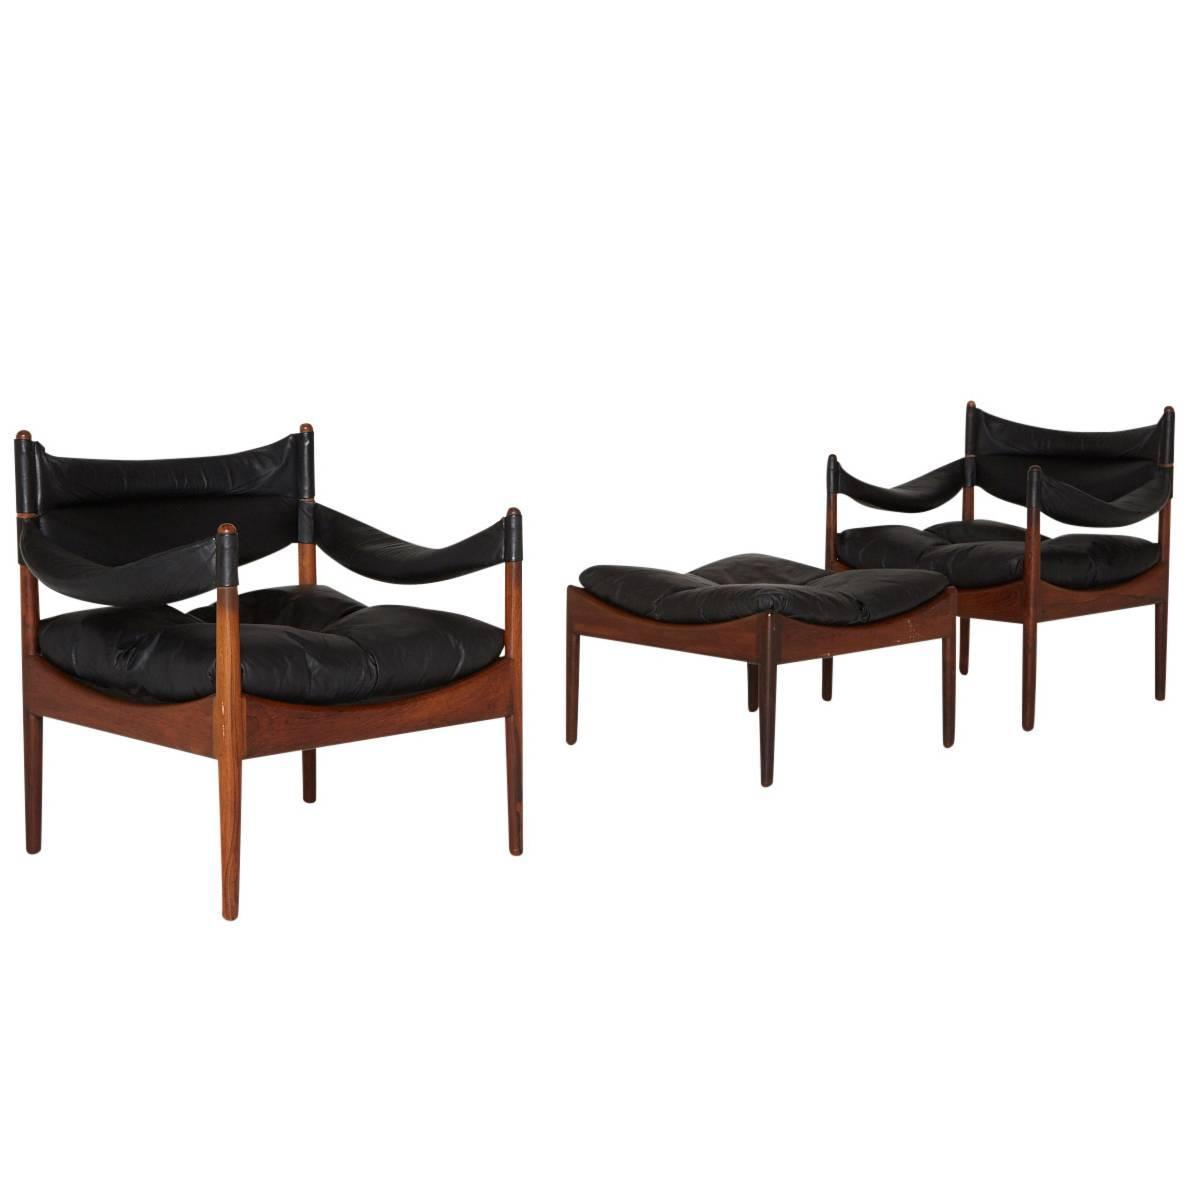 Modus Leather Lounge Chairs And Ottoman By Kristian Solmer Vedel At 1stdibs